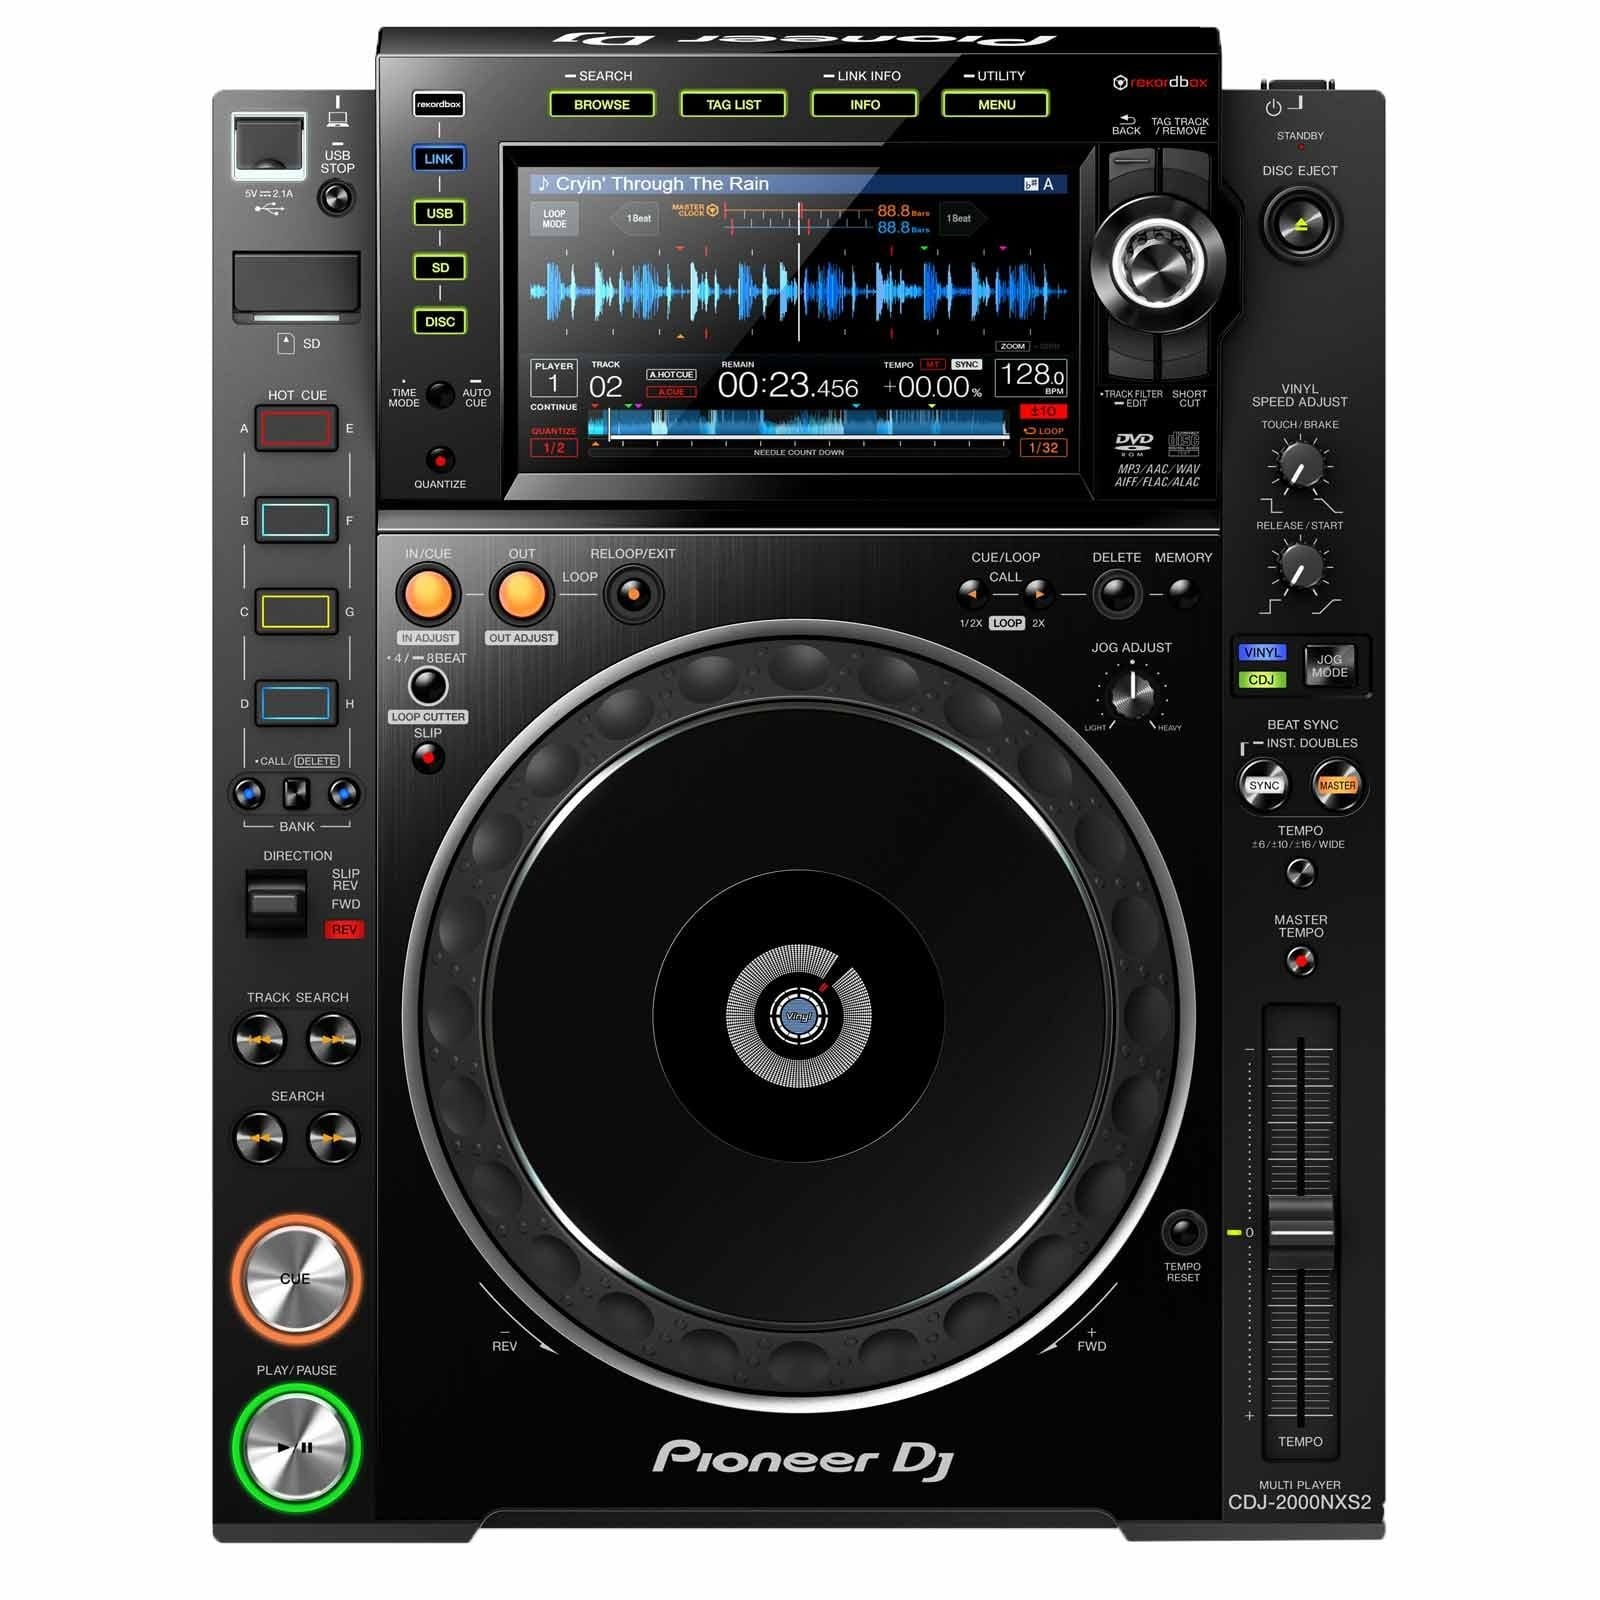 pioneer-dj-cdj-2000nxs2-pro-dj-multi-player-with-high-resolution-audio-support-1d4.jpg